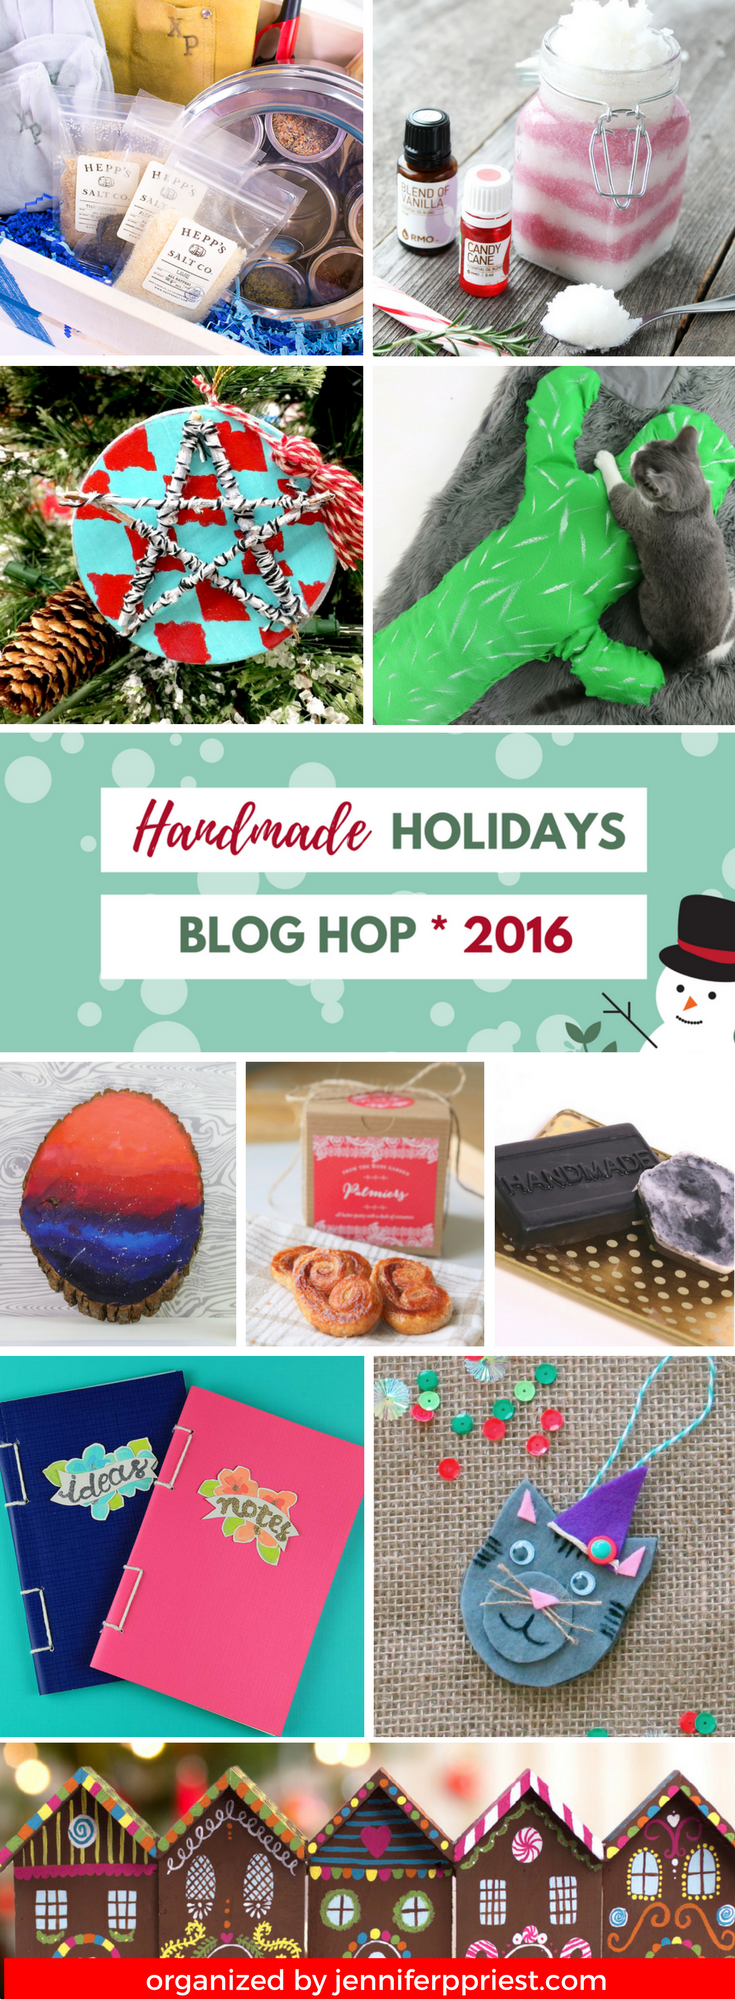 The Handmade Holidays 2016 blog hop features 50 plus ideas for recipes, decor and gifts. Click to check it out!